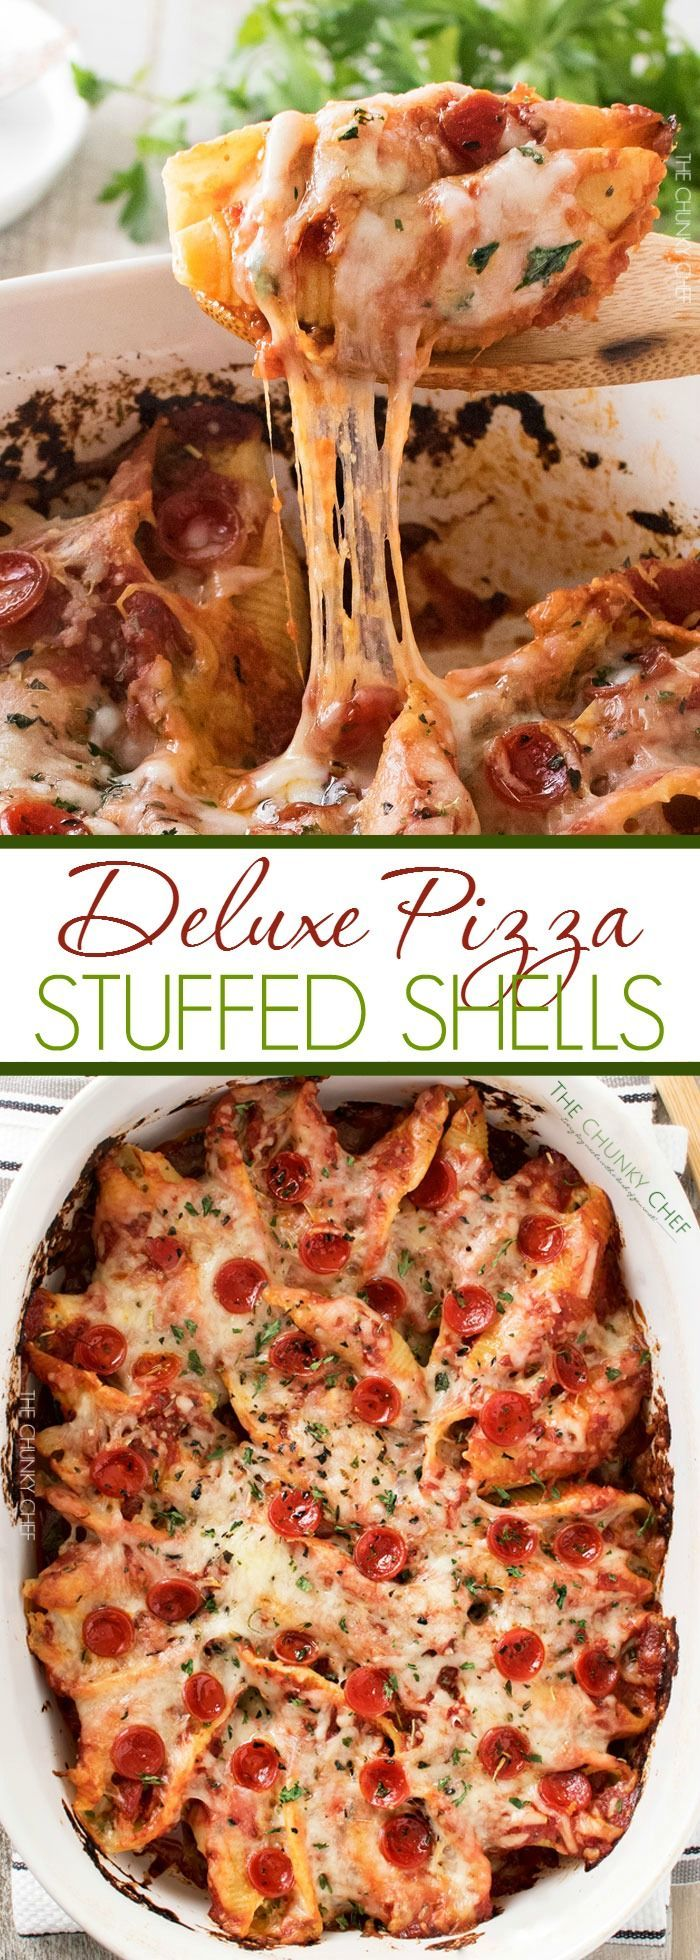 Deluxe Pizza Stuffed Shells   Classic stuffed shells meet deluxe pizza in this fusion of Italian meals... they're easy to make, freezer friendly, and great for families!   http://thechunkychef.com